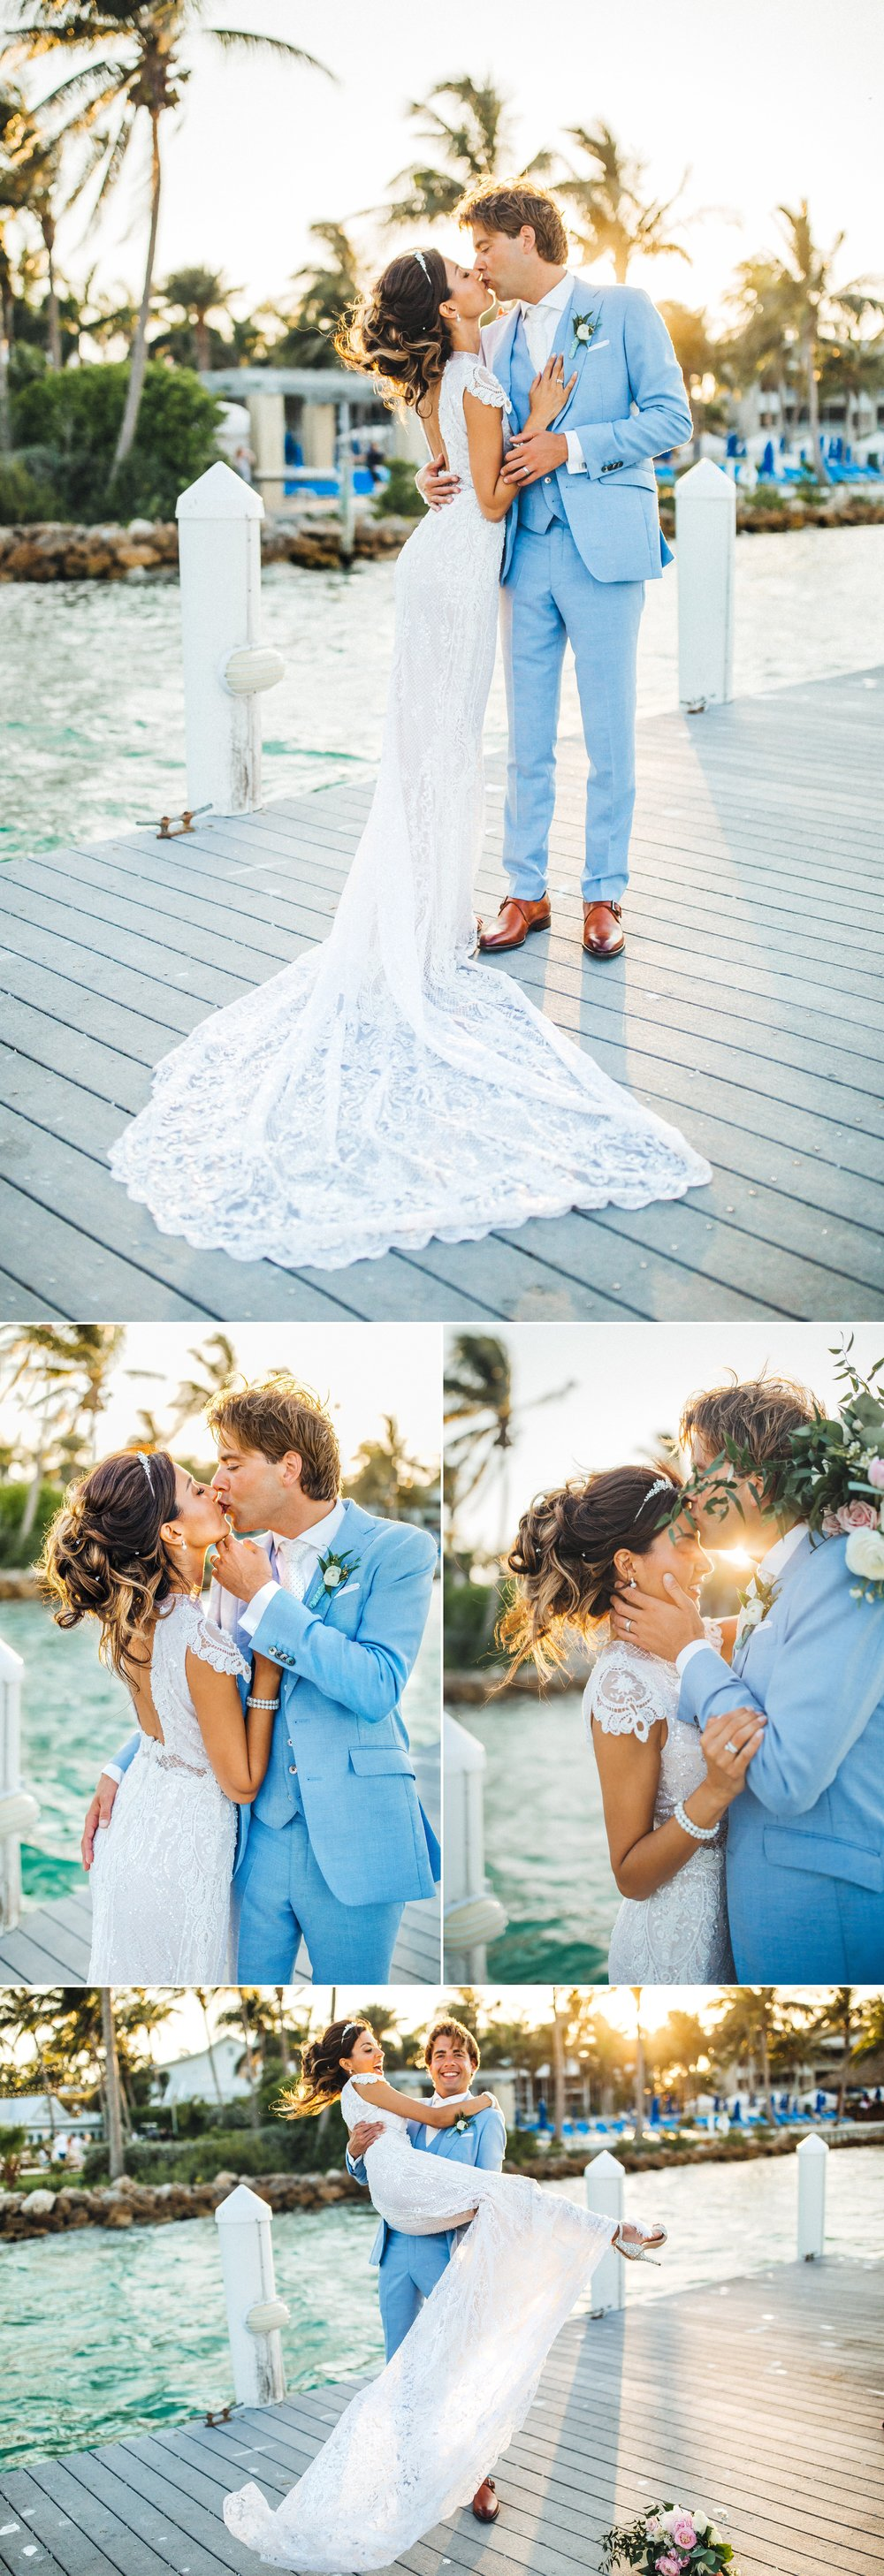 Captiva Island Destination Elopement Wedding Photography-blog- Zohra+David-by-Shaina-DeCiryan24.jpg